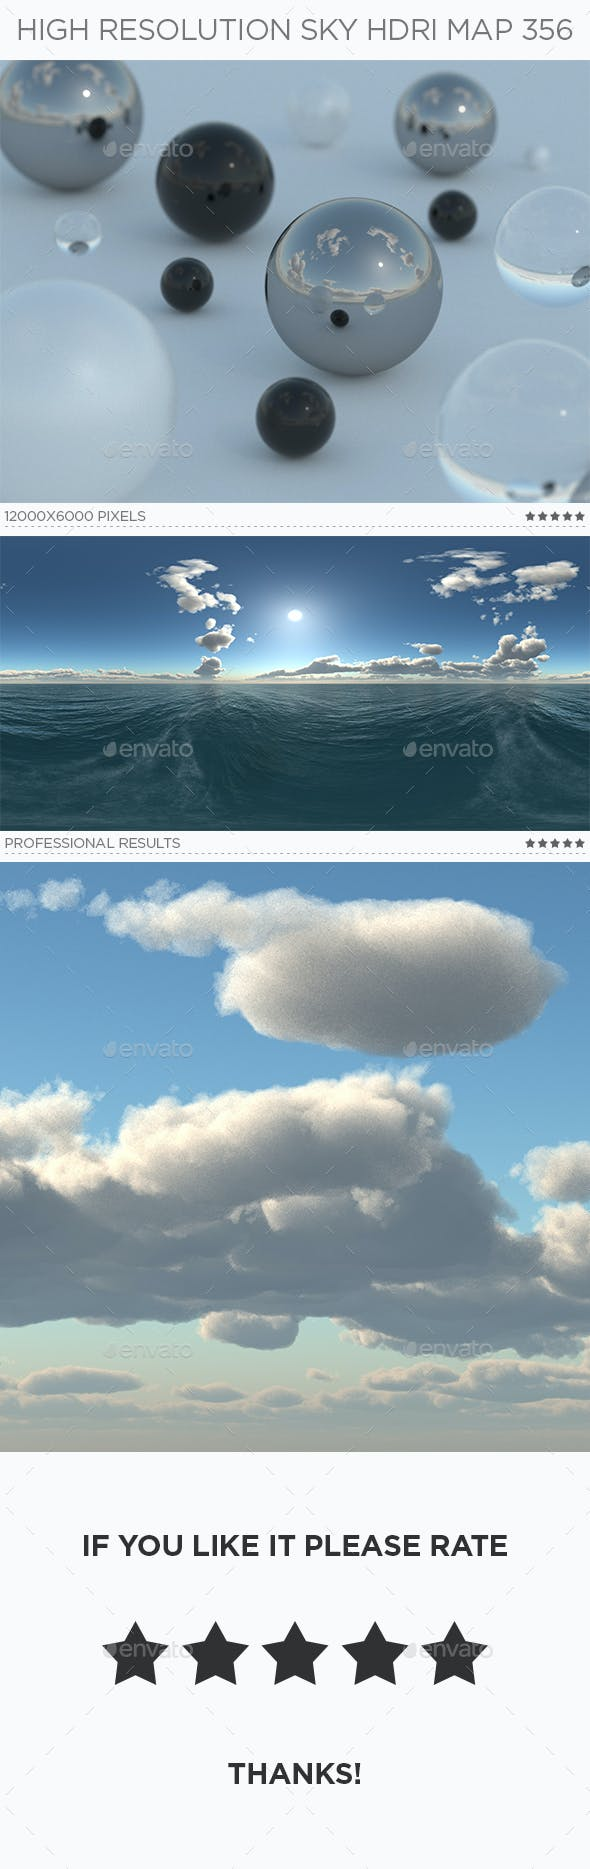 High Resolution Sky HDRi Map 356 - 3DOcean Item for Sale